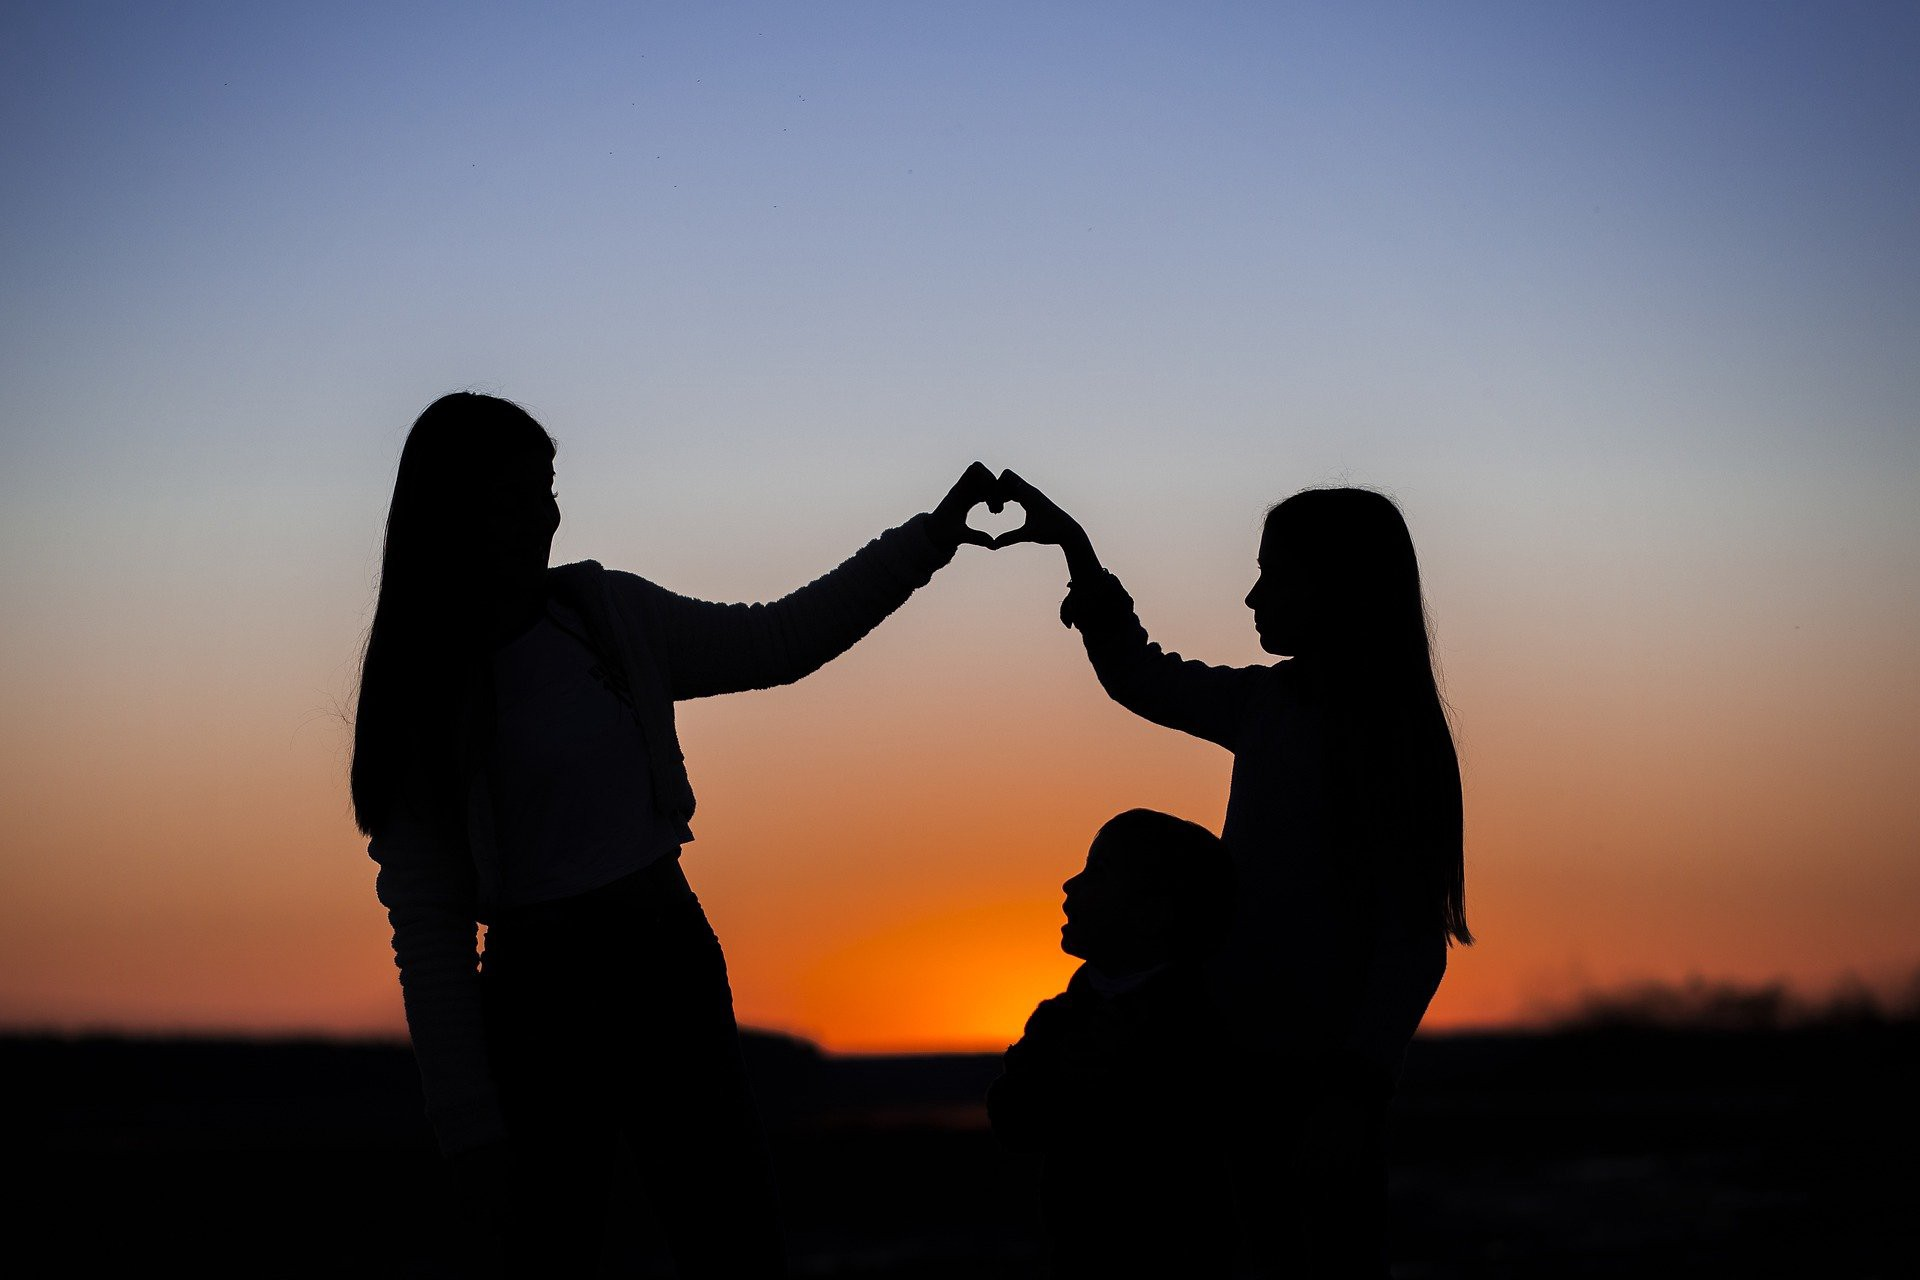 Three girls hanging out together with two of them forming the shape of a heart with their hands in the sunset